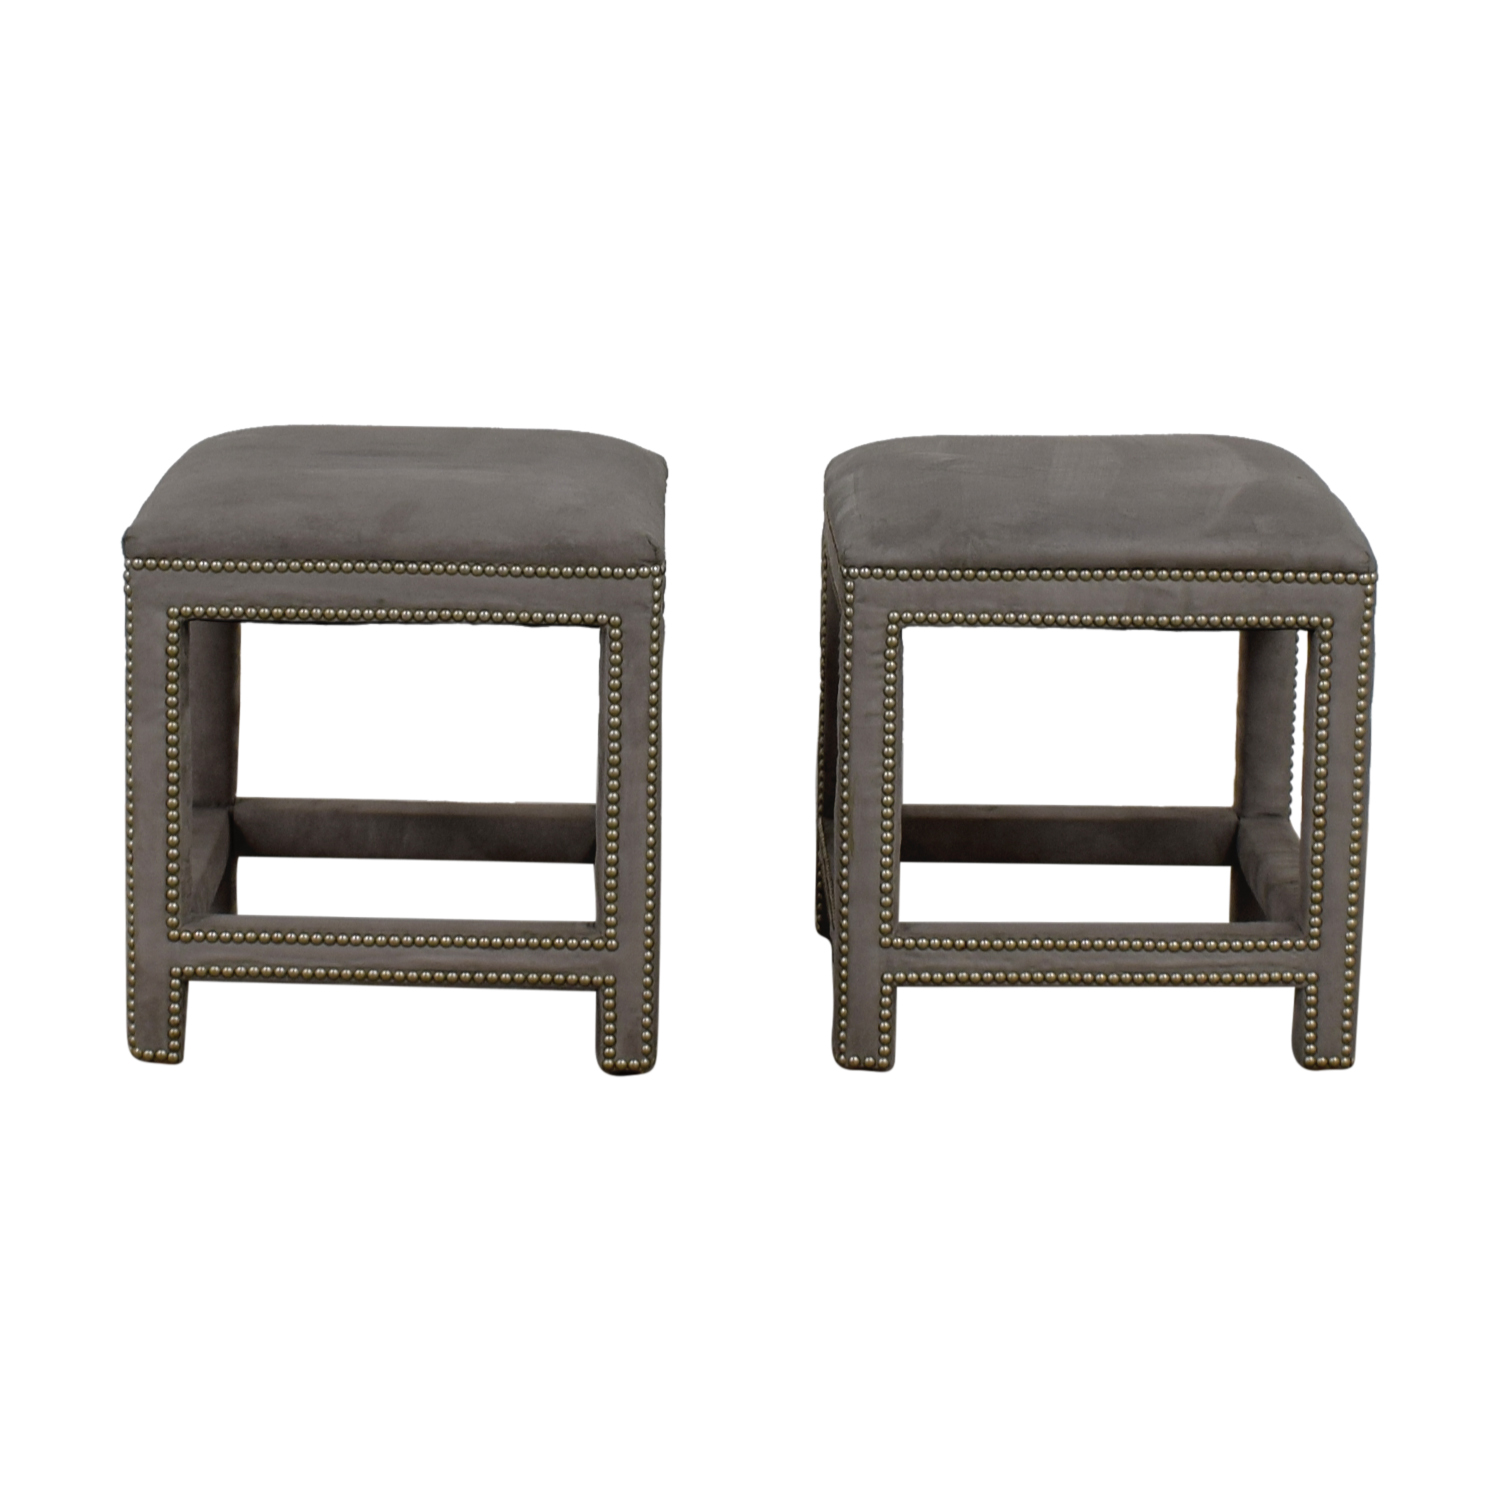 Lillian August Lillian August Grey Suede Nailhead Ottomans or Stools coupon